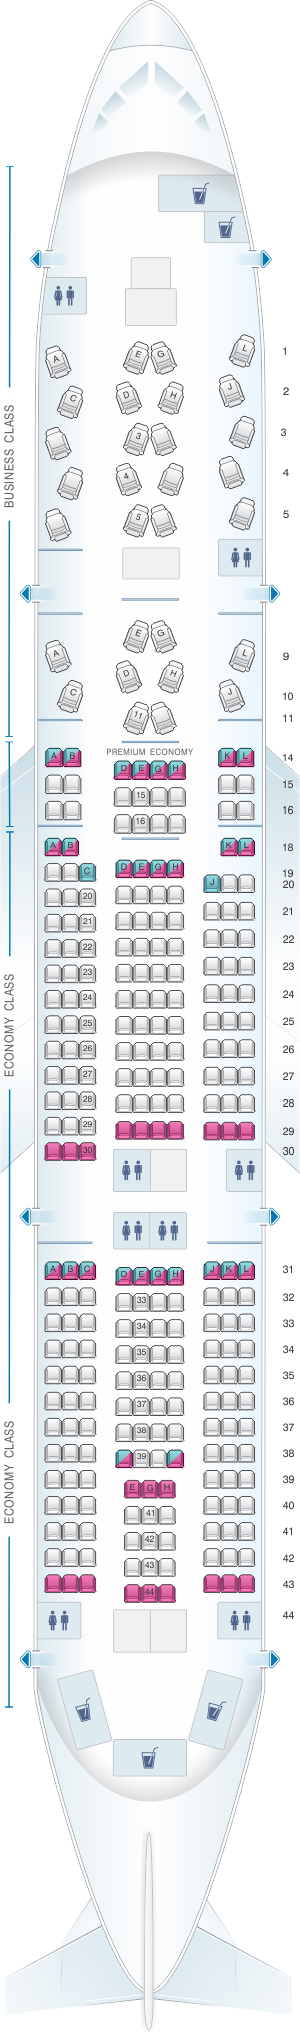 Seat map for Alitalia Airlines - Air One Boeing B777 200ER